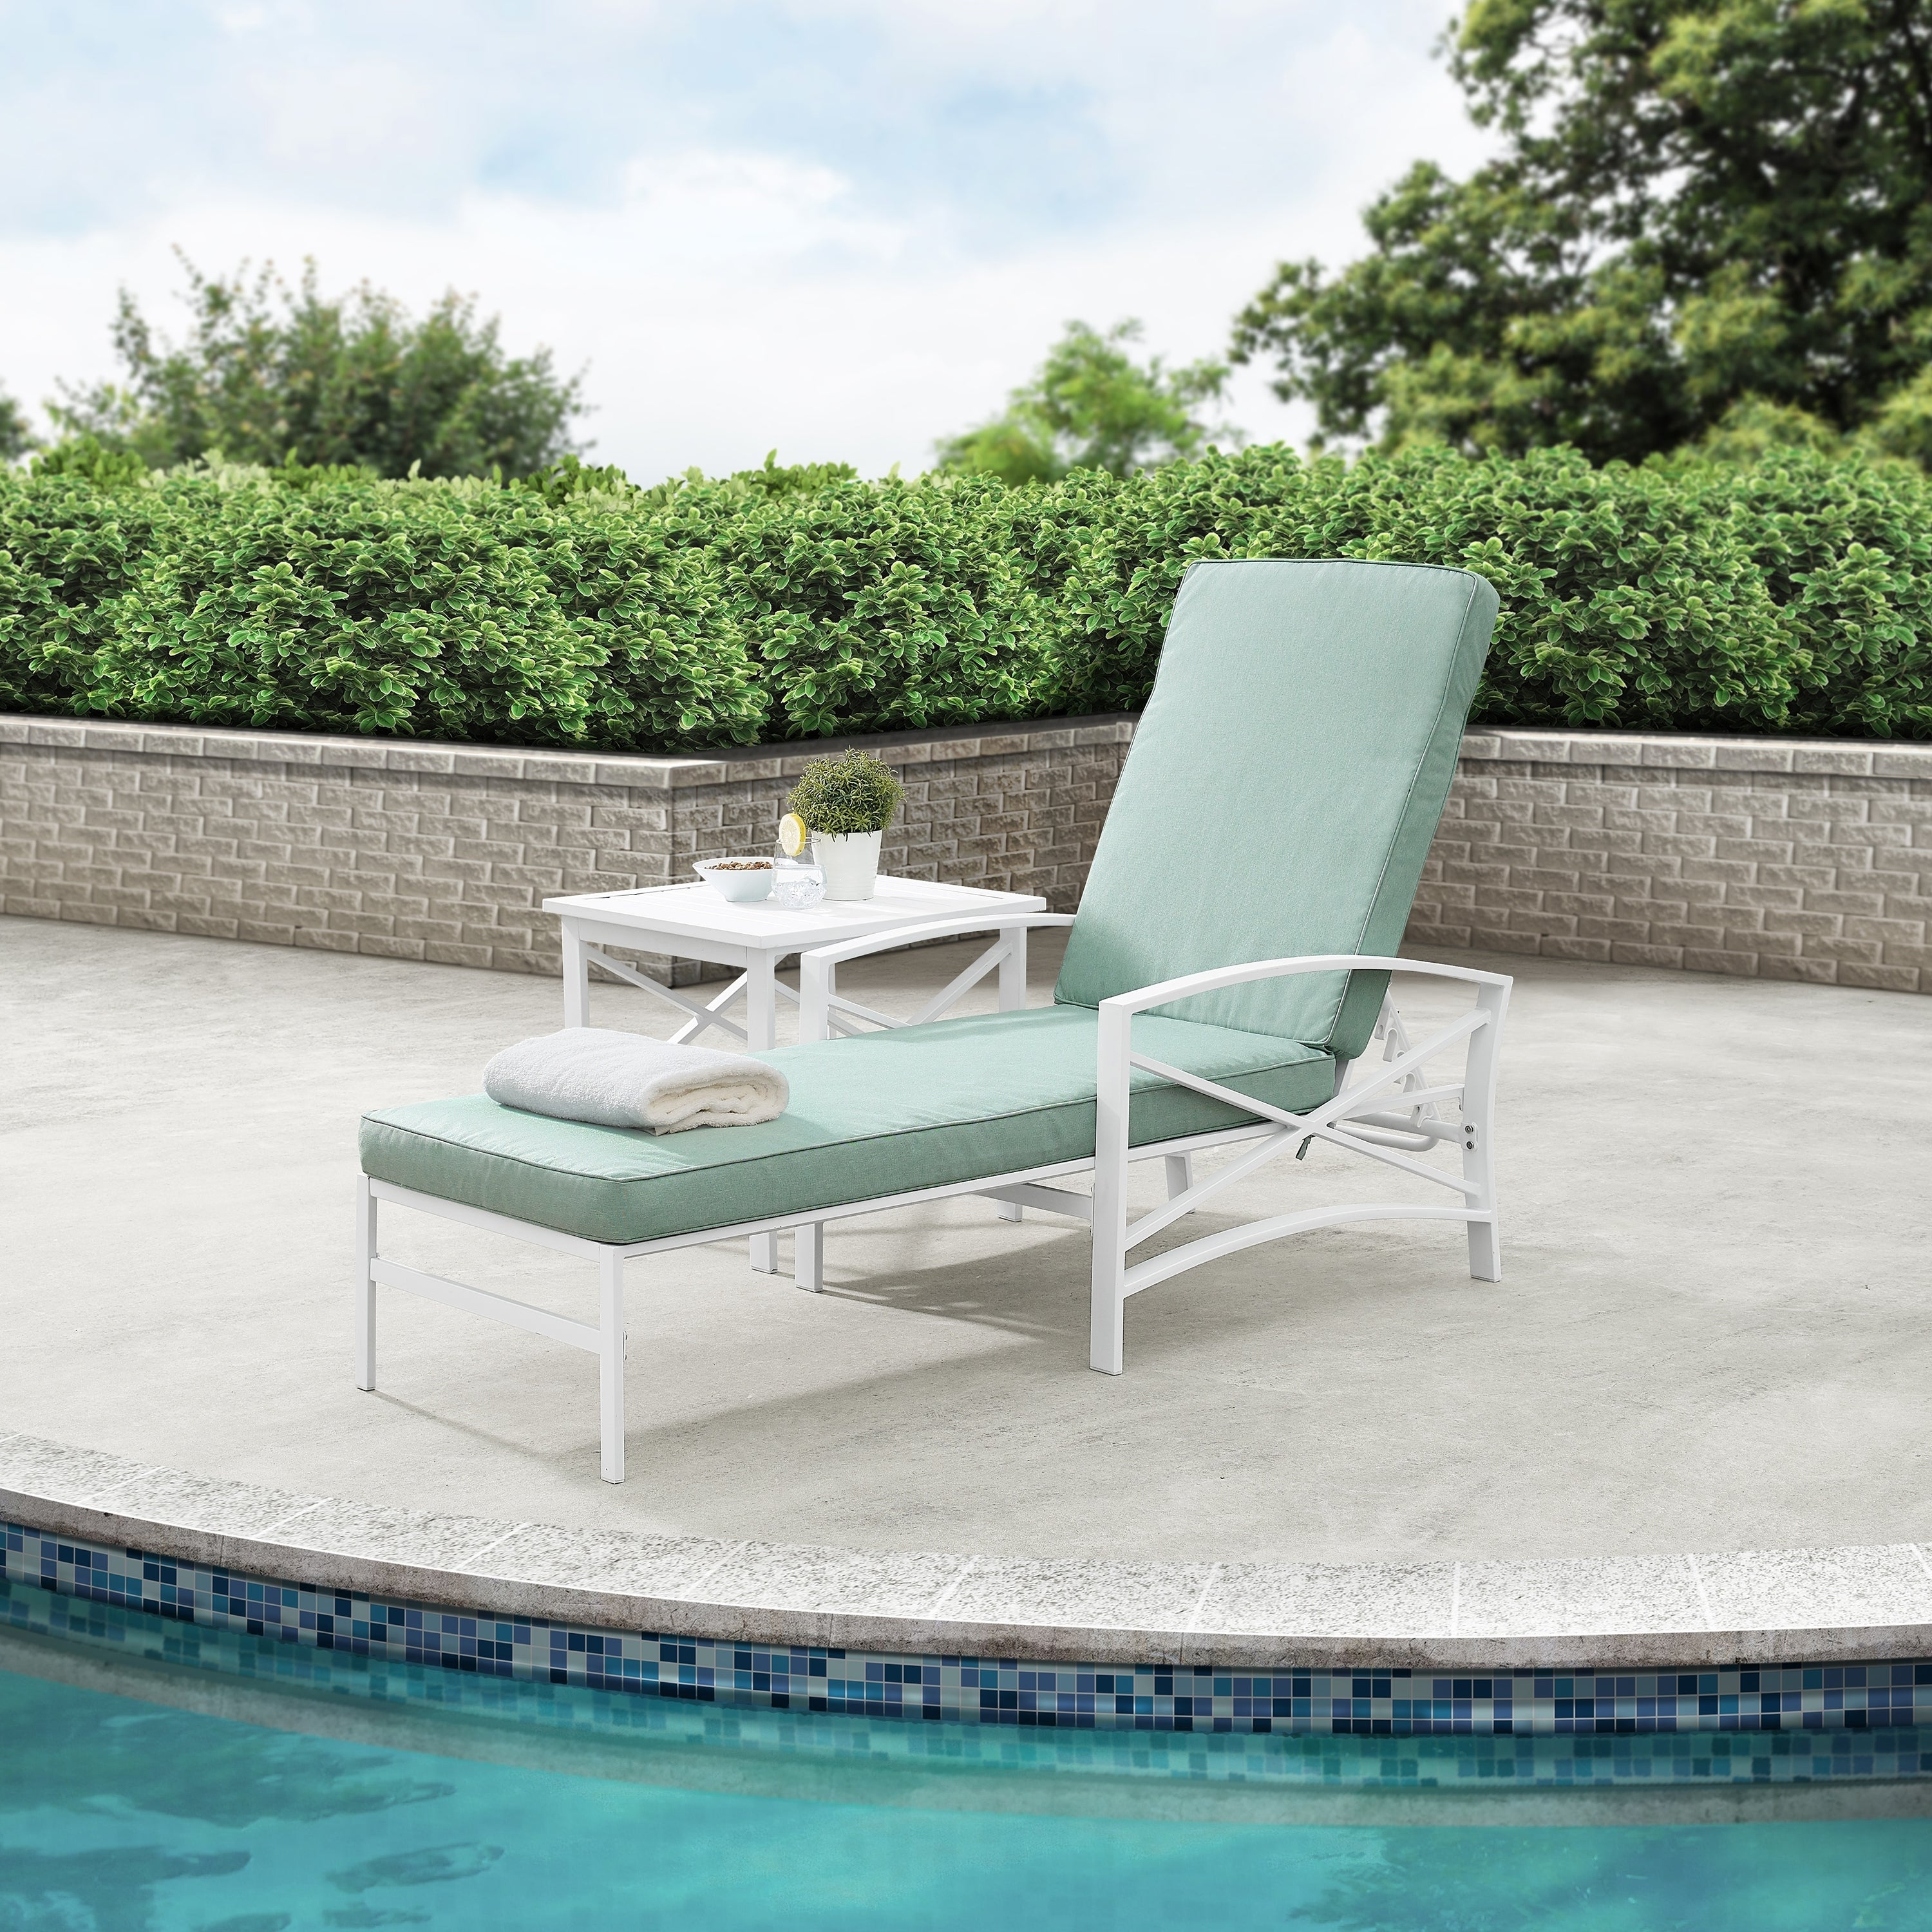 Well Known Havenside Home Davis Chaise Lounge Chair In White With Mist Cushions Regarding Chaise Lounge Chairs In Bronze With Mist Cushions (View 18 of 25)